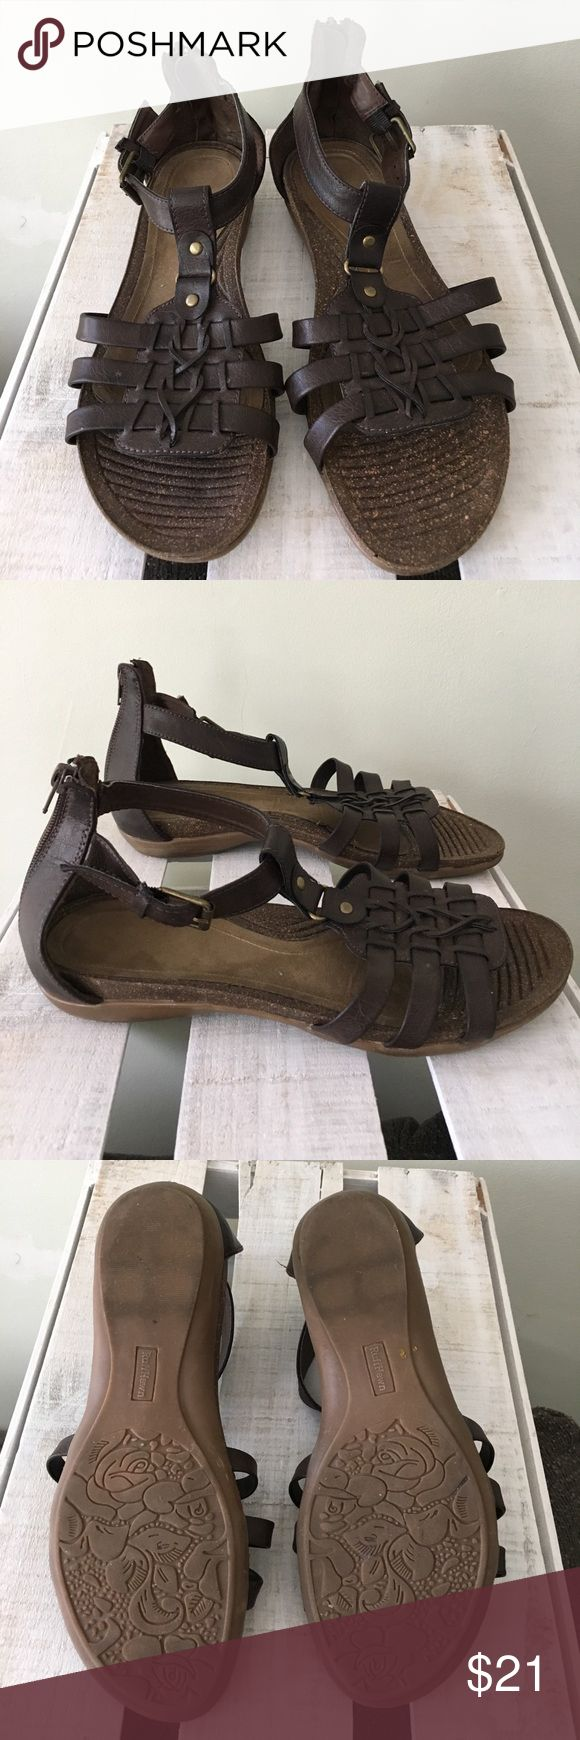 Ruff Hewn Dandy Sandals In good condition. Flat Sandals w/ braided detail and back zipper. Size 9M ruff Hewn Shoes Sandals